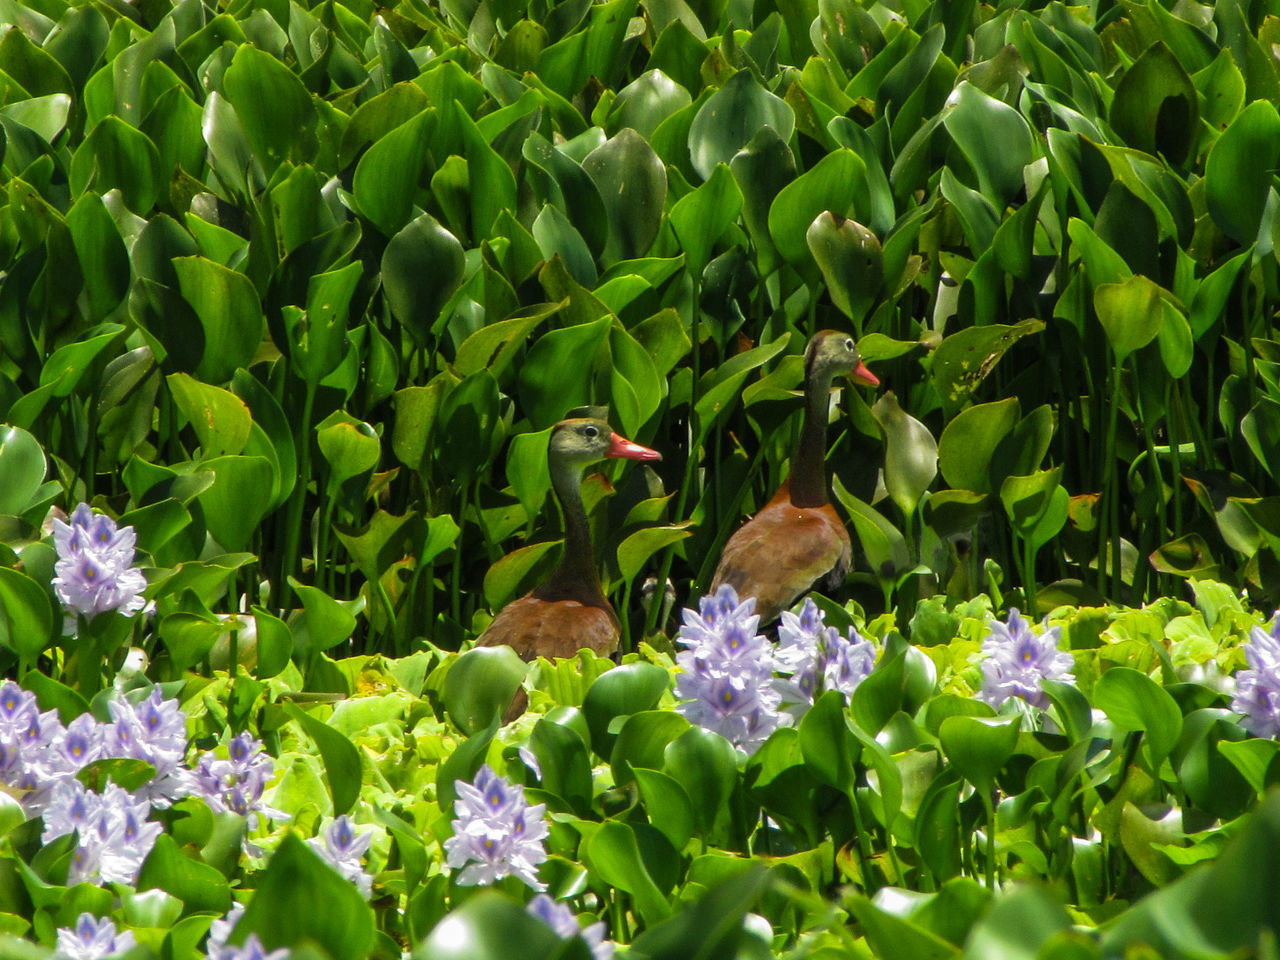 A couple of ducks hanging out in the lake around lilies in Catemaco, Veracruz, Mexico. Animals In The Wild Duck Ducks Green Color Lake Landscape Lilies Lily Nature